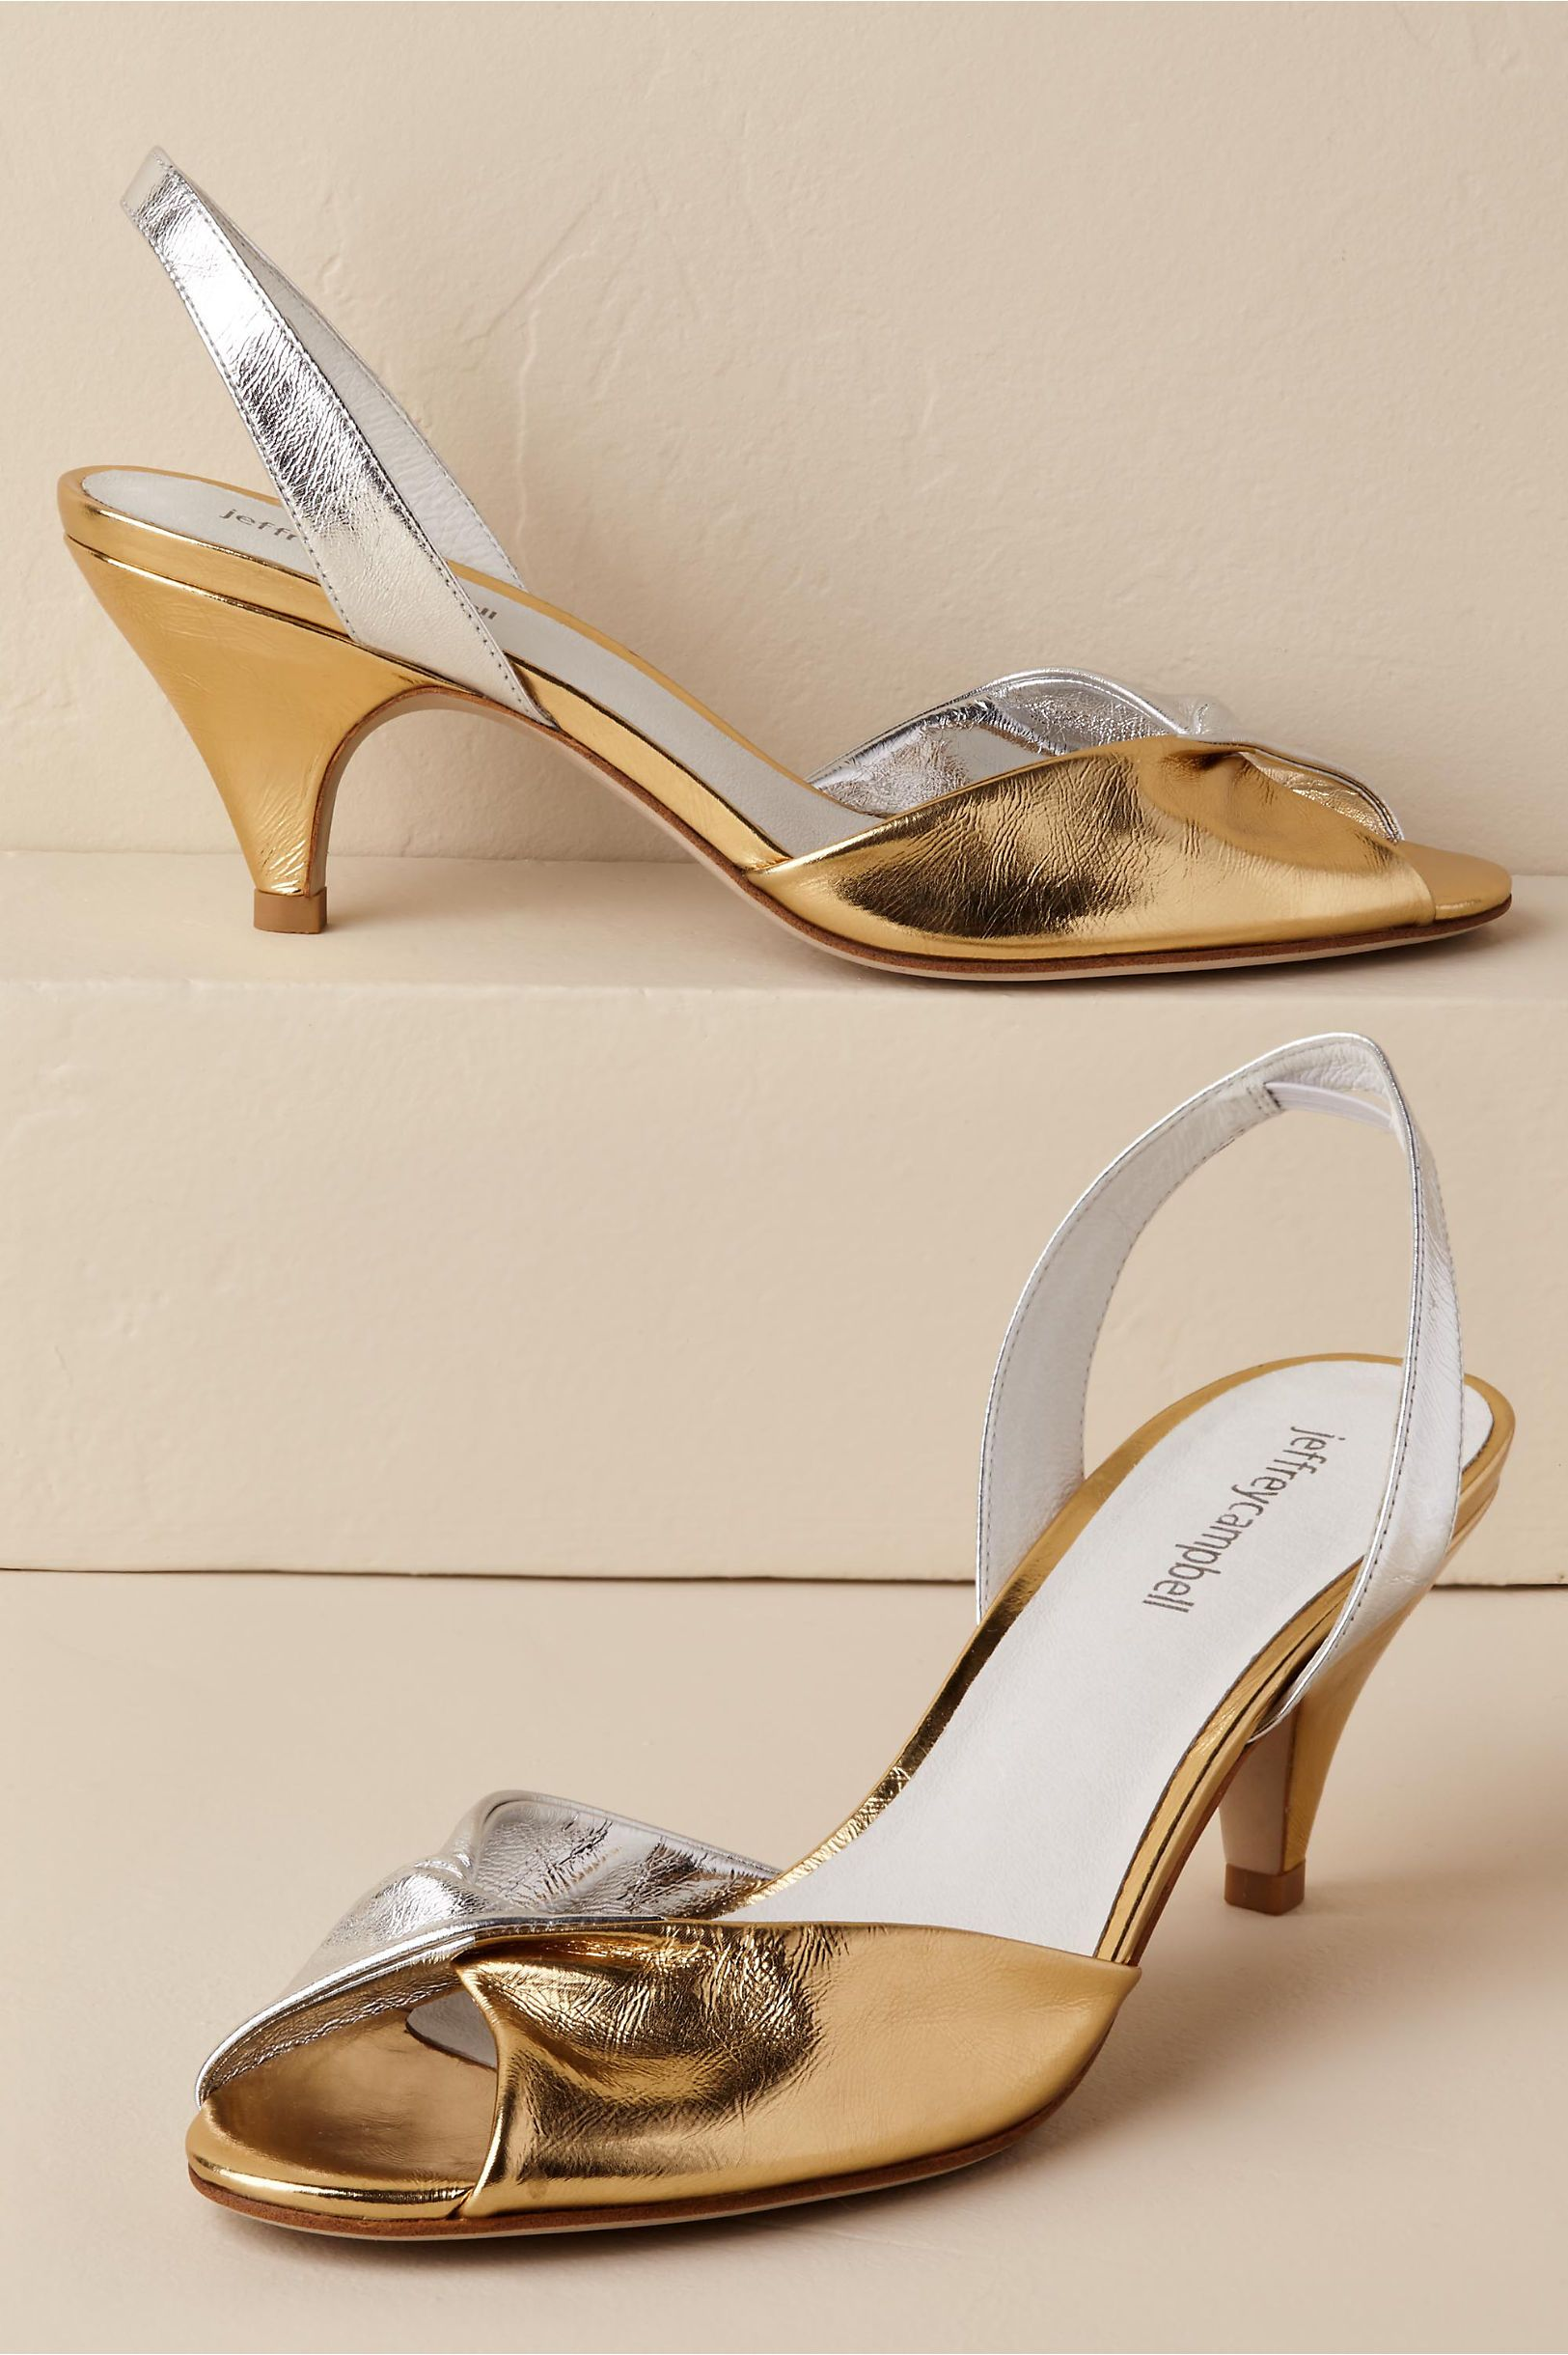 94938258d8a BHLDN s Jeffrey Campbell Siyana Kitten Heels in Silver Gold Combo ...